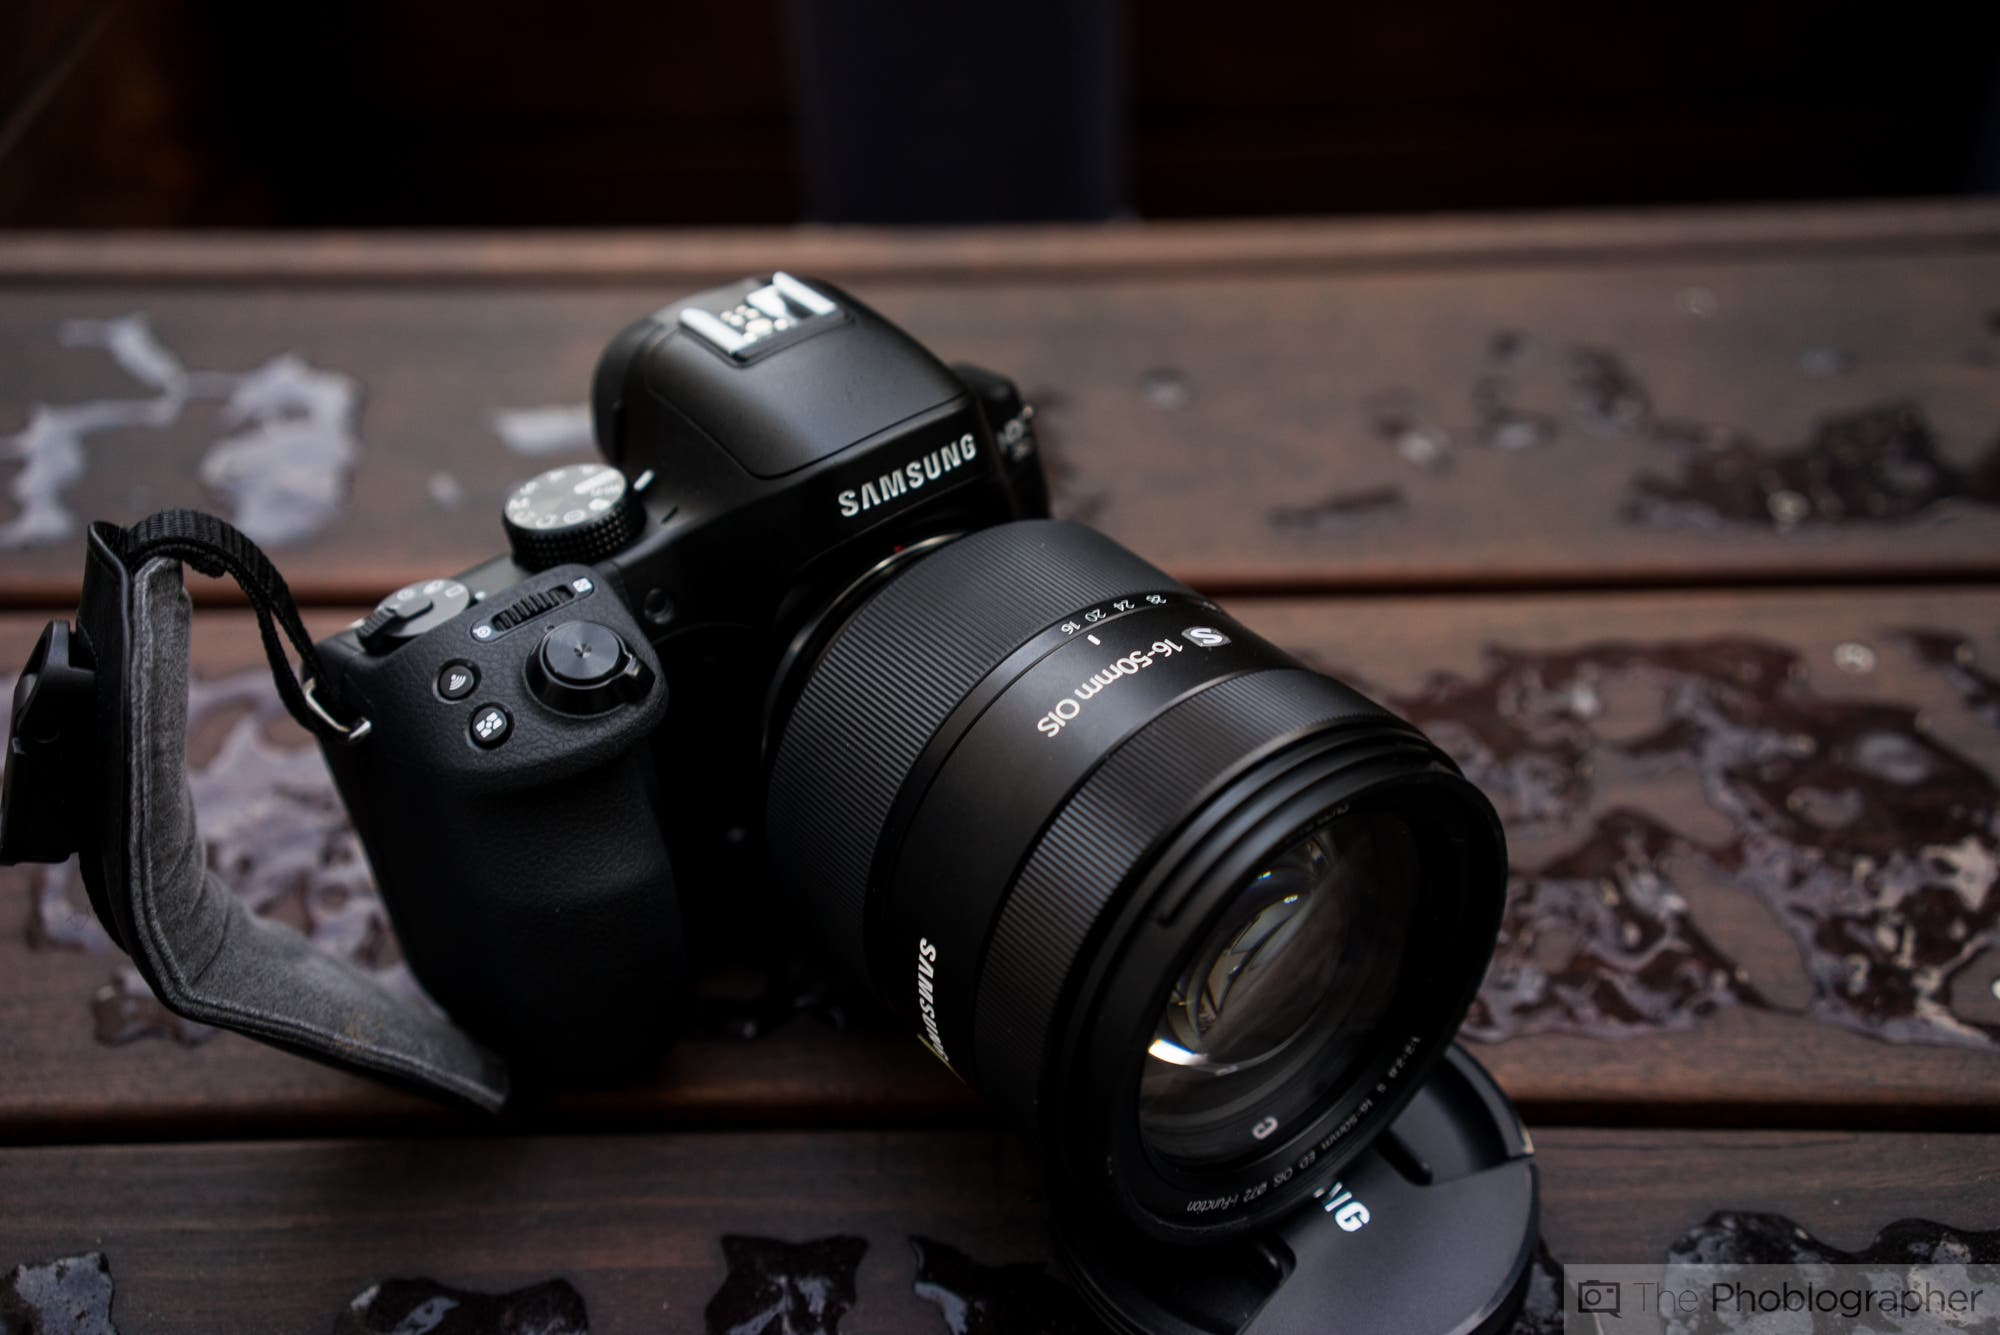 Samsung is Letting You Trade Your Old DSLR for a Brand New NX30 at New York's Times Square